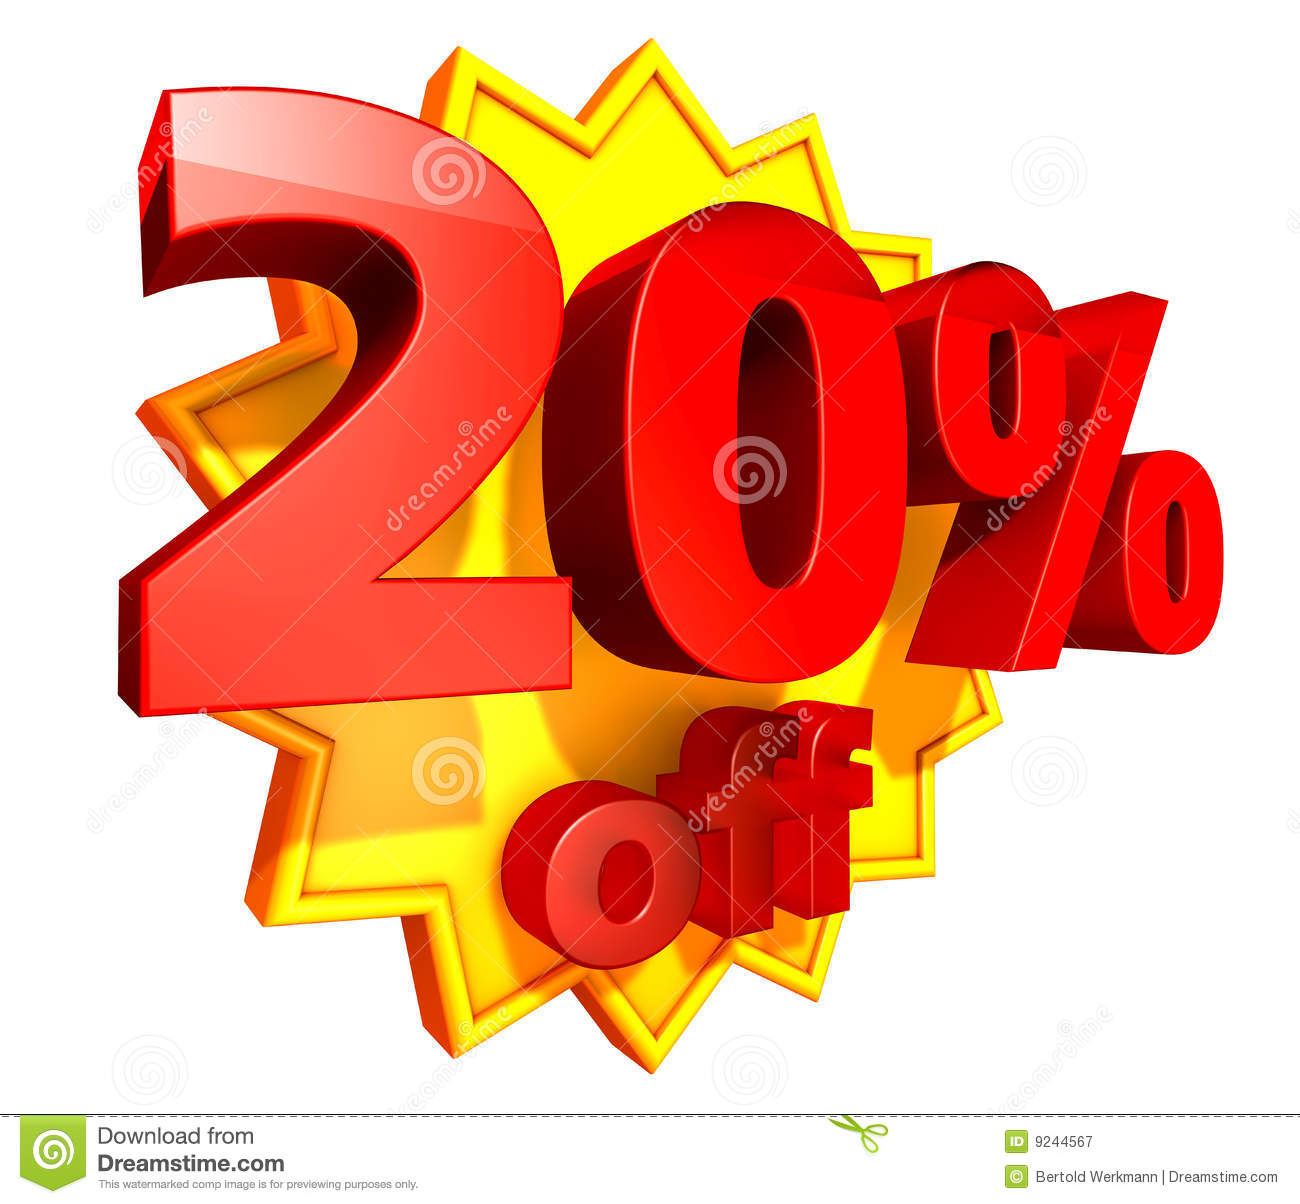 Nov 22, · With the additional 20% discount, you'd save a cool $ on list price since the iPad would only cost you $ plus tax. Save 20% on Gift Cards You can purchase most third-party gift card and enjoy a 20% discount.